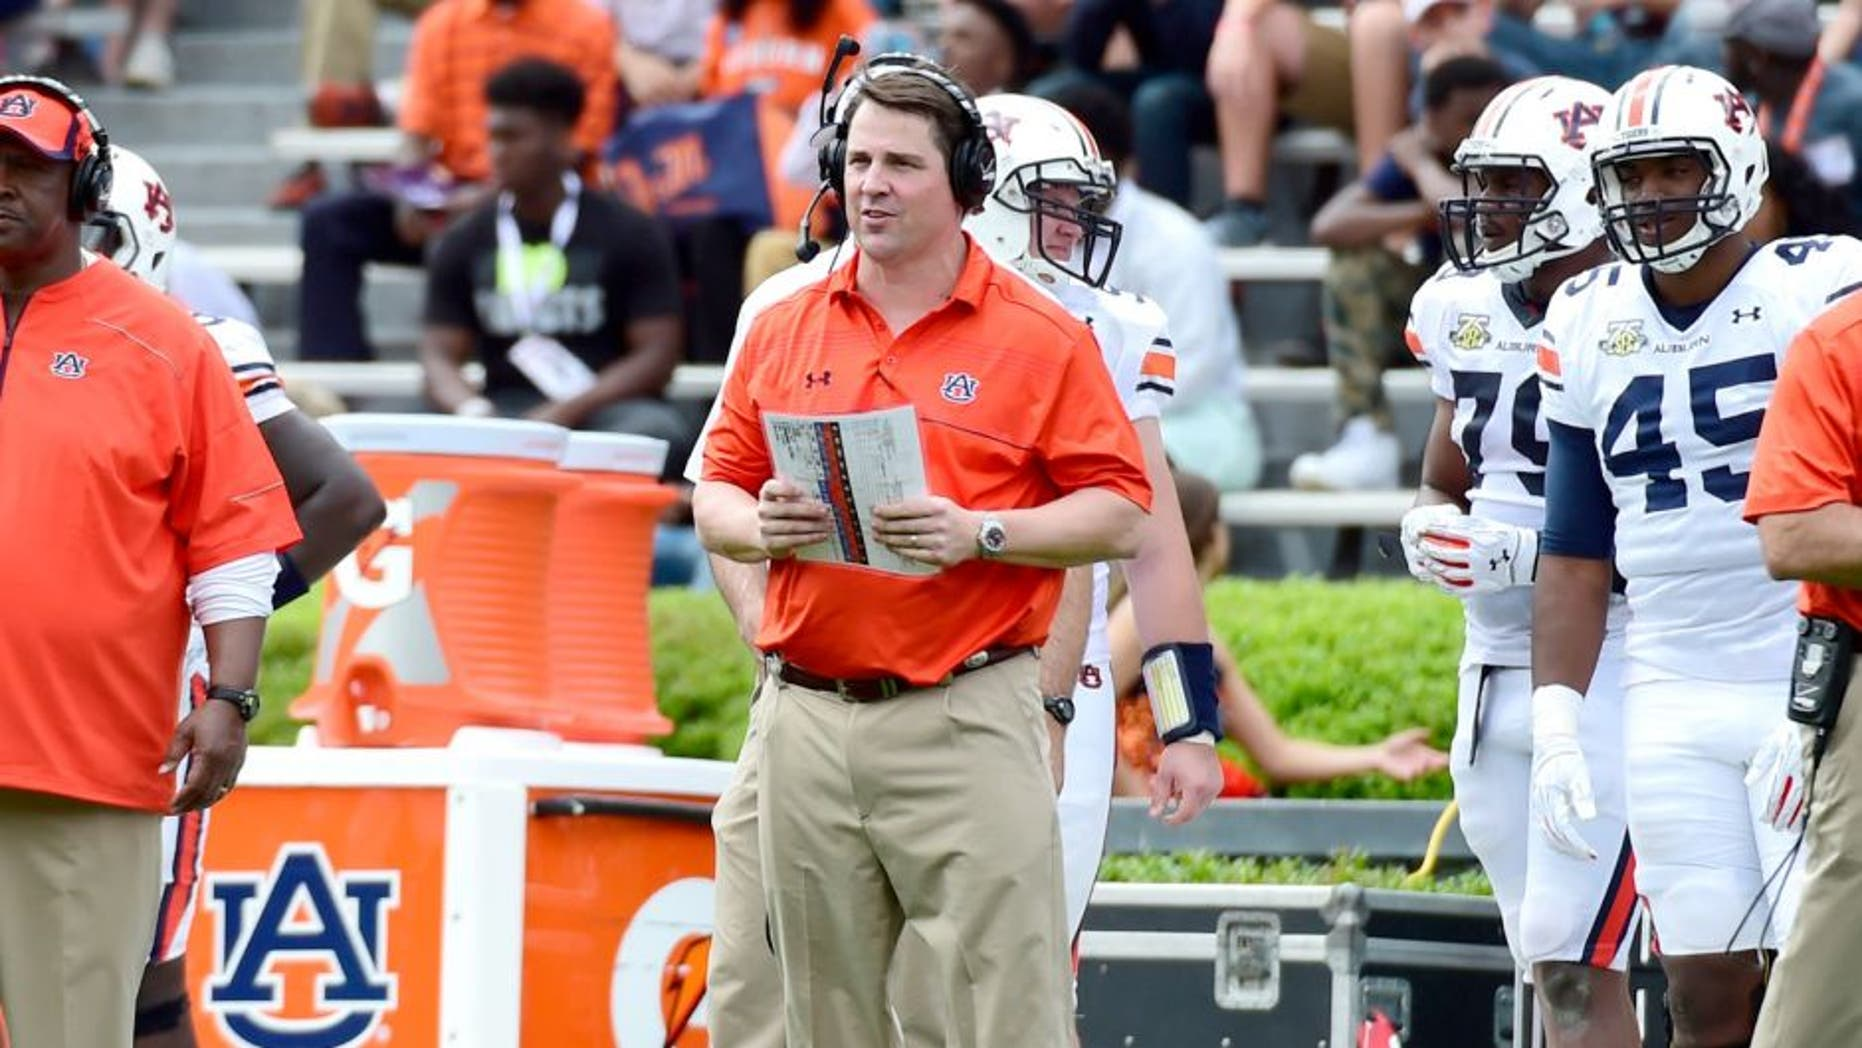 Apr 18, 2015; Auburn, AL, USA; Auburn Tigers defensive coordinator Will Muschamp looks on during the spring game at Jordan-Hare Stadium. Mandatory Credit: Shanna Lockwood-USA TODAY Sports